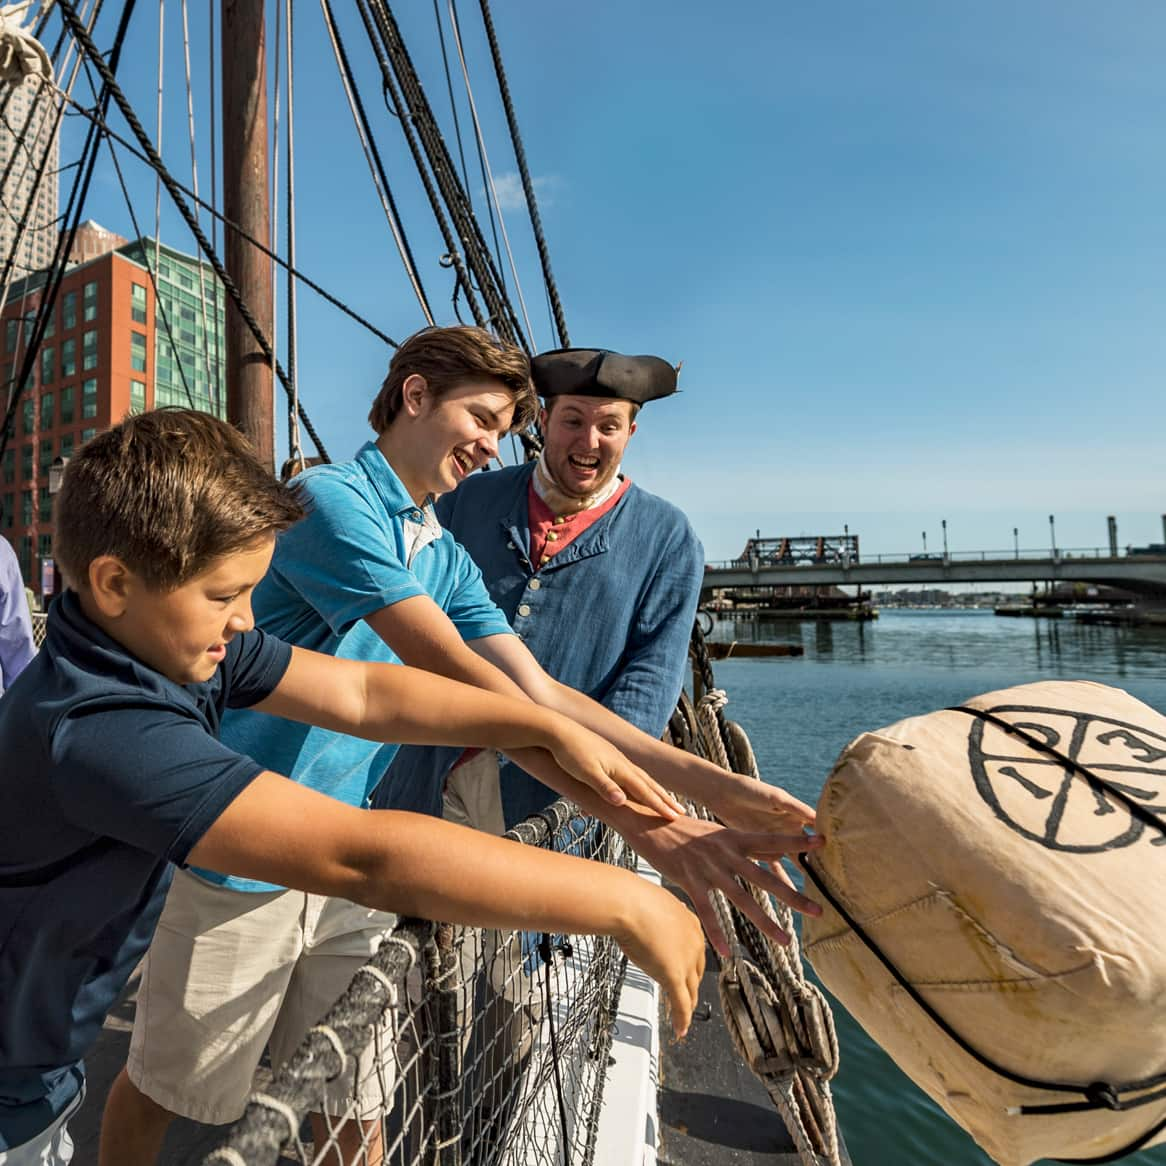 People look on as a young boy throws a crate of tea over a boat railing